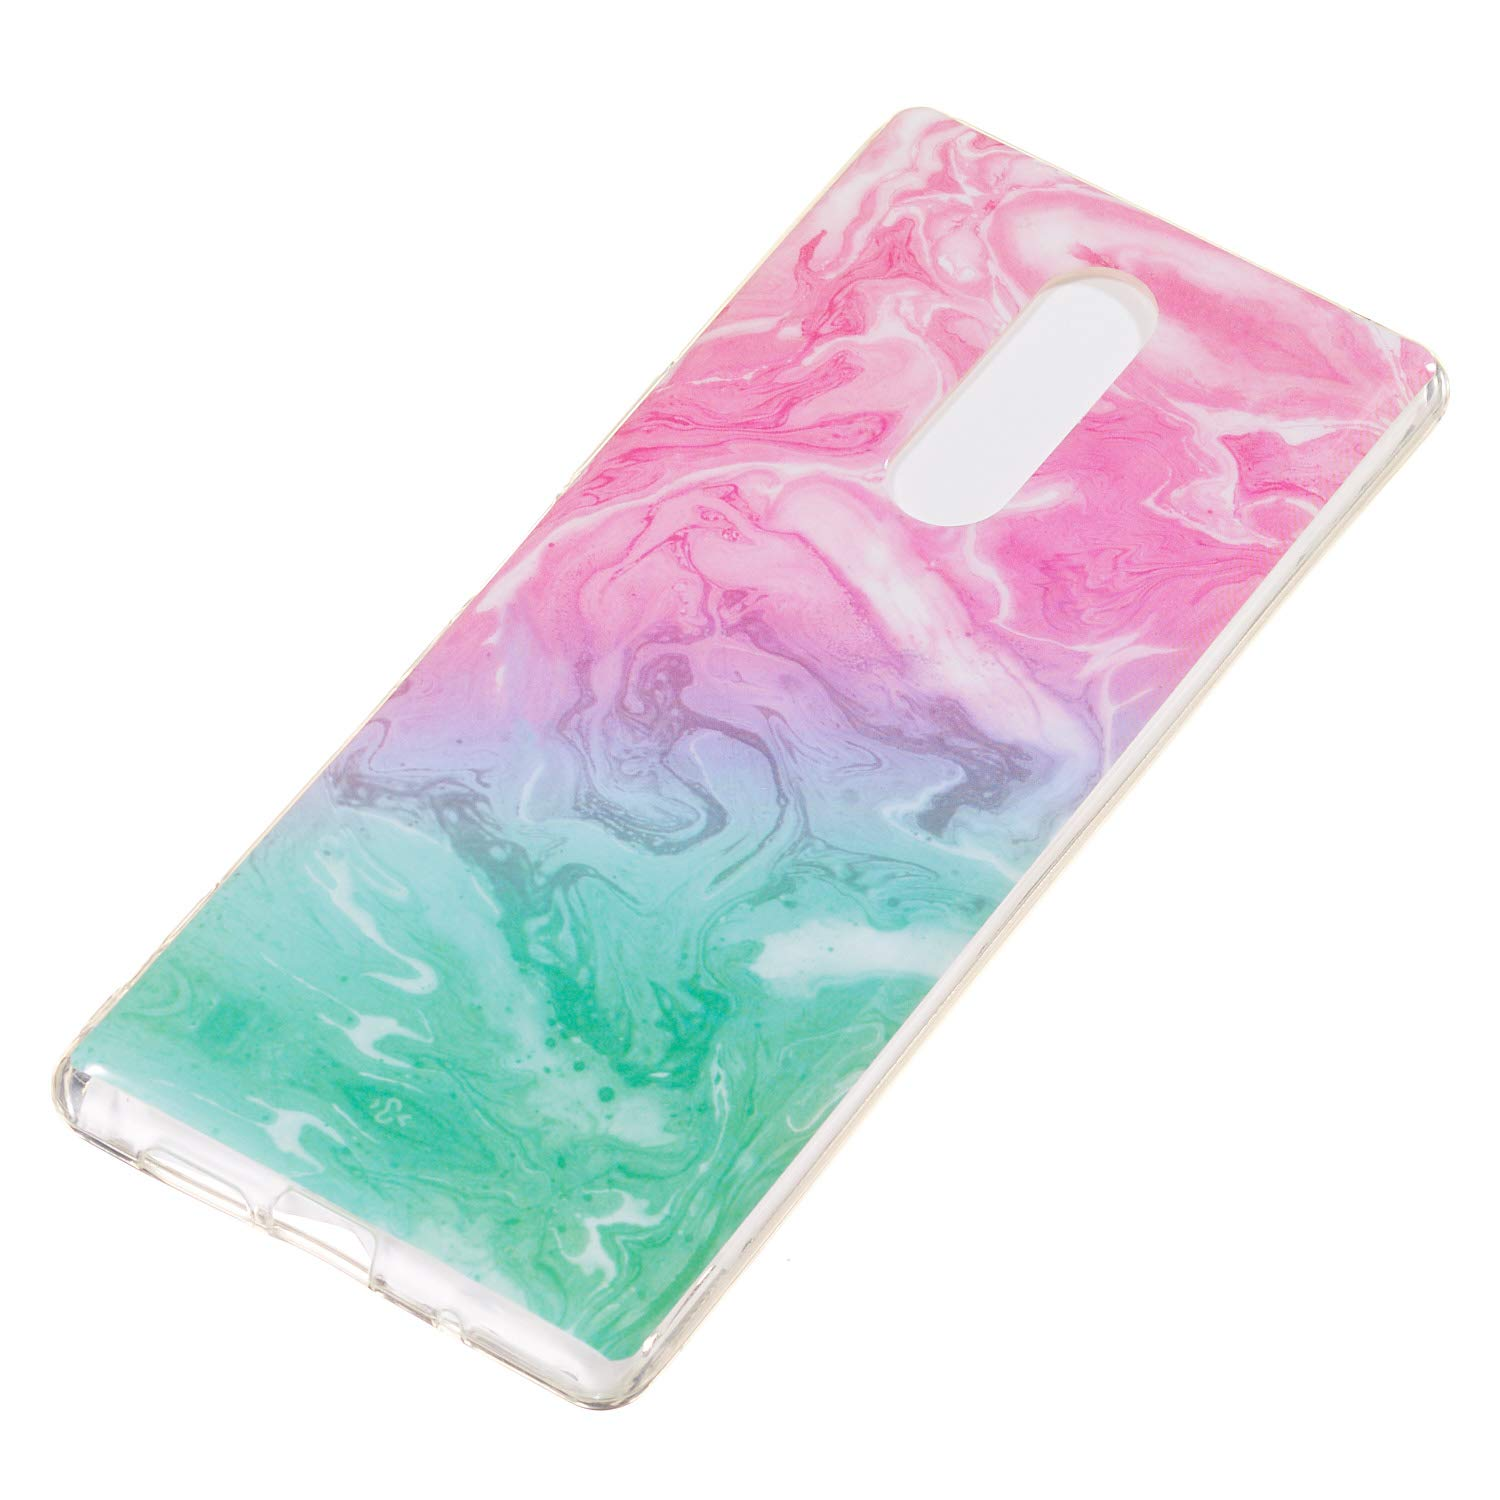 Soft Case for Sony Xperia XZ4,Anti Scratch Cover for Sony Xperia XZ4,Herzzer Stylish Pretty Pink Blue Marble Stone Pattern TPU Bumper Flexible Shock Scratch Resist Rubber Case by Herzzer (Image #3)